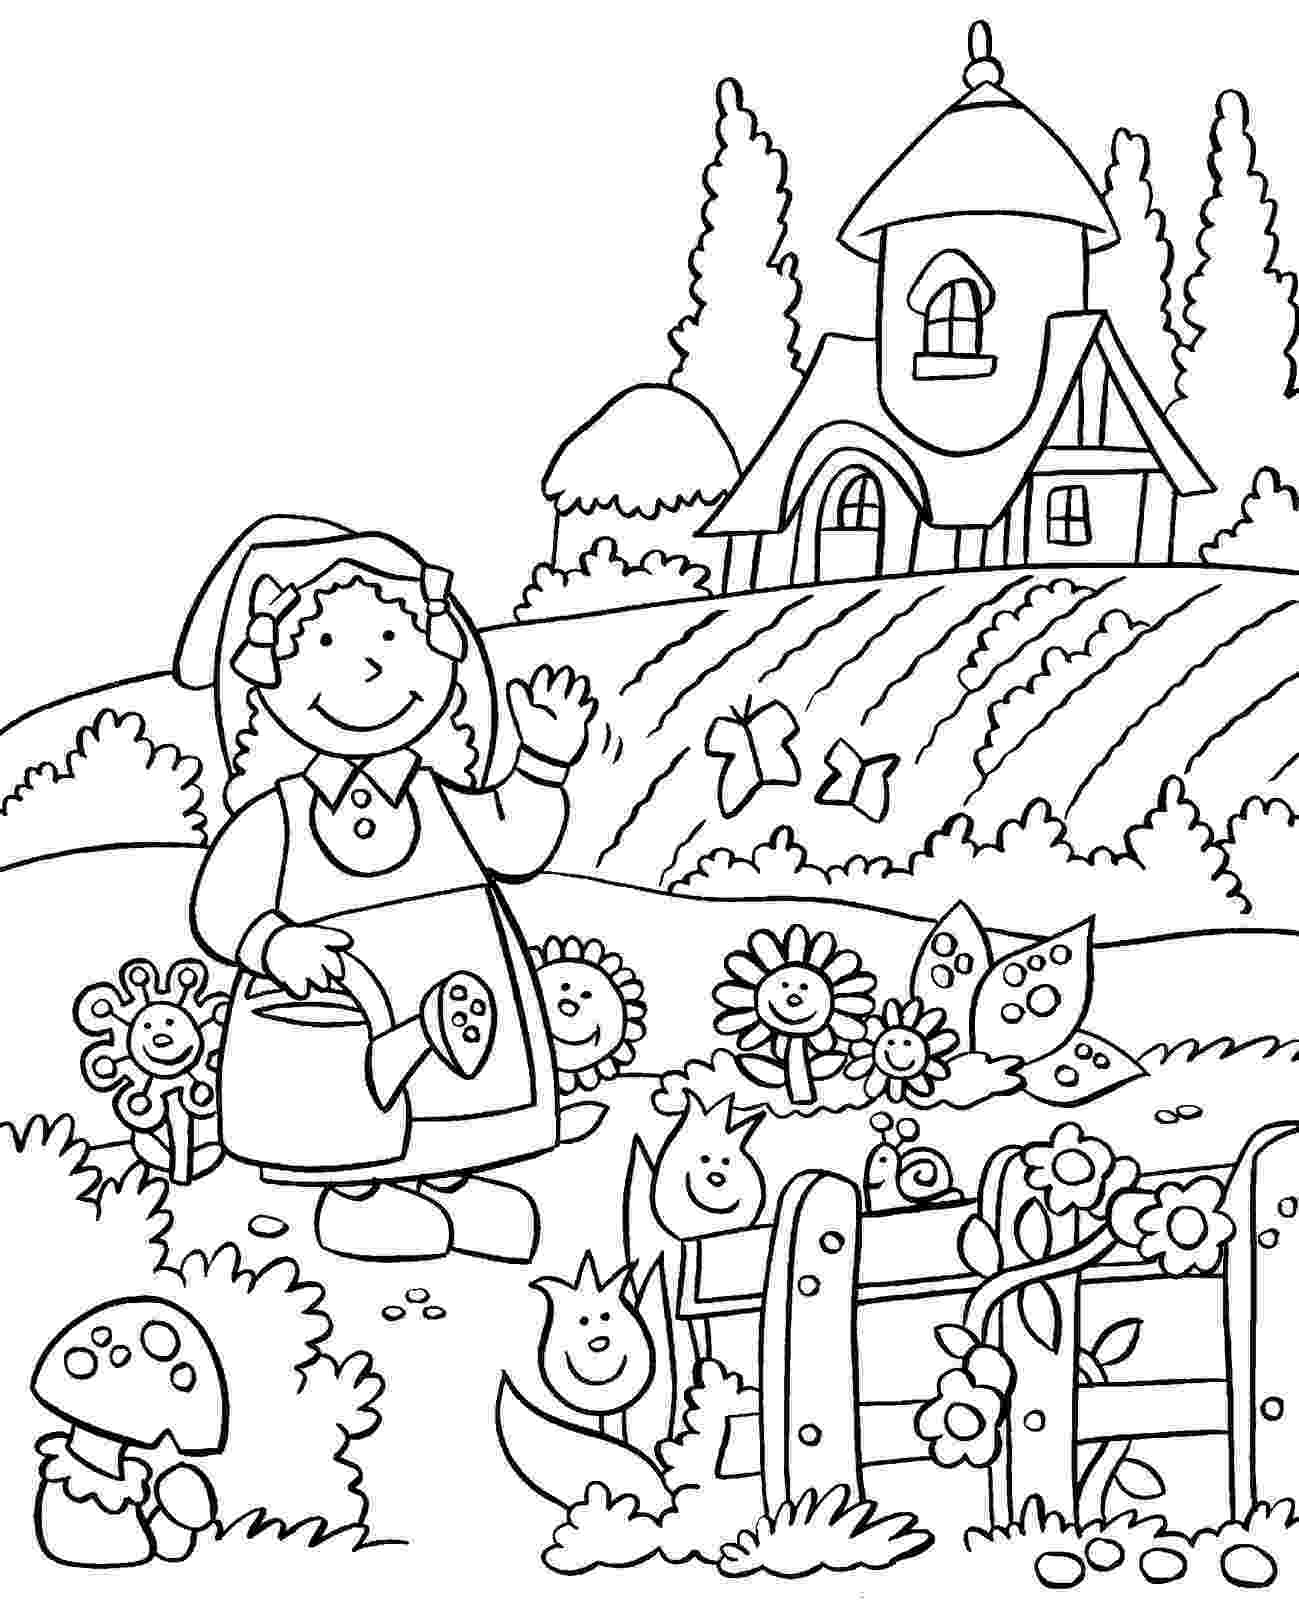 flower garden colouring picture flower garden coloring pages to download and print for free colouring picture garden flower